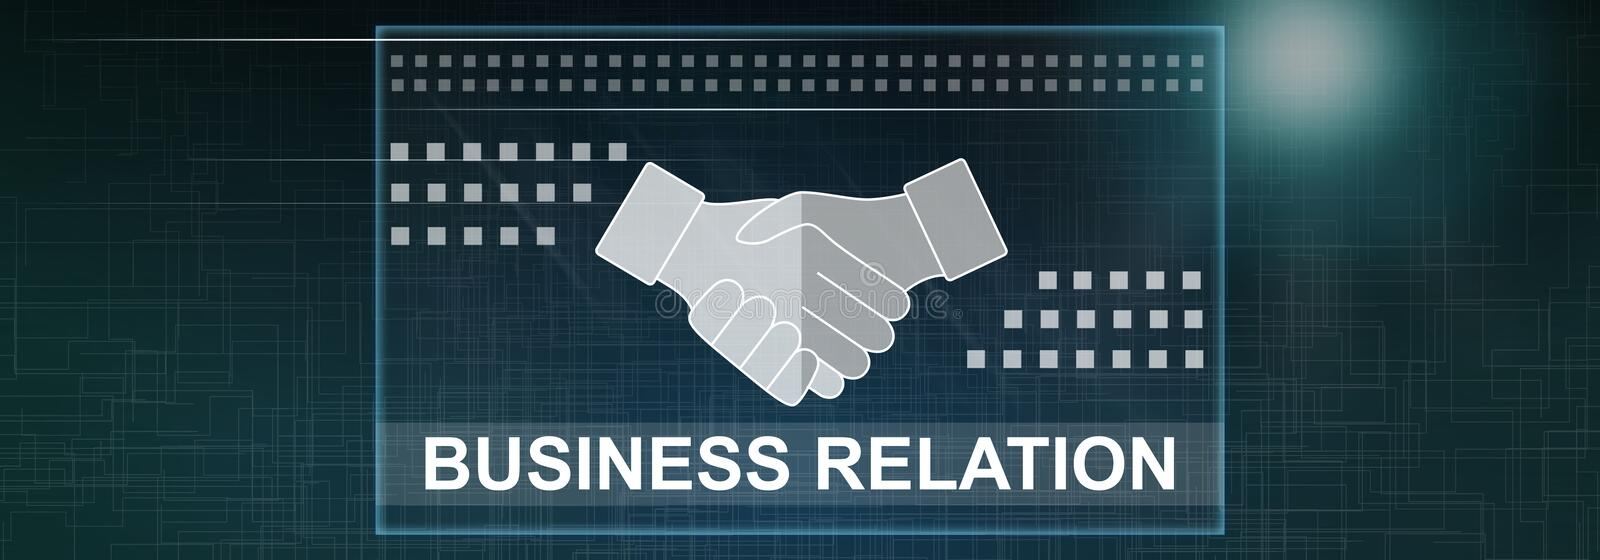 Concept of business relation. Illustration of a business relation concept vector illustration